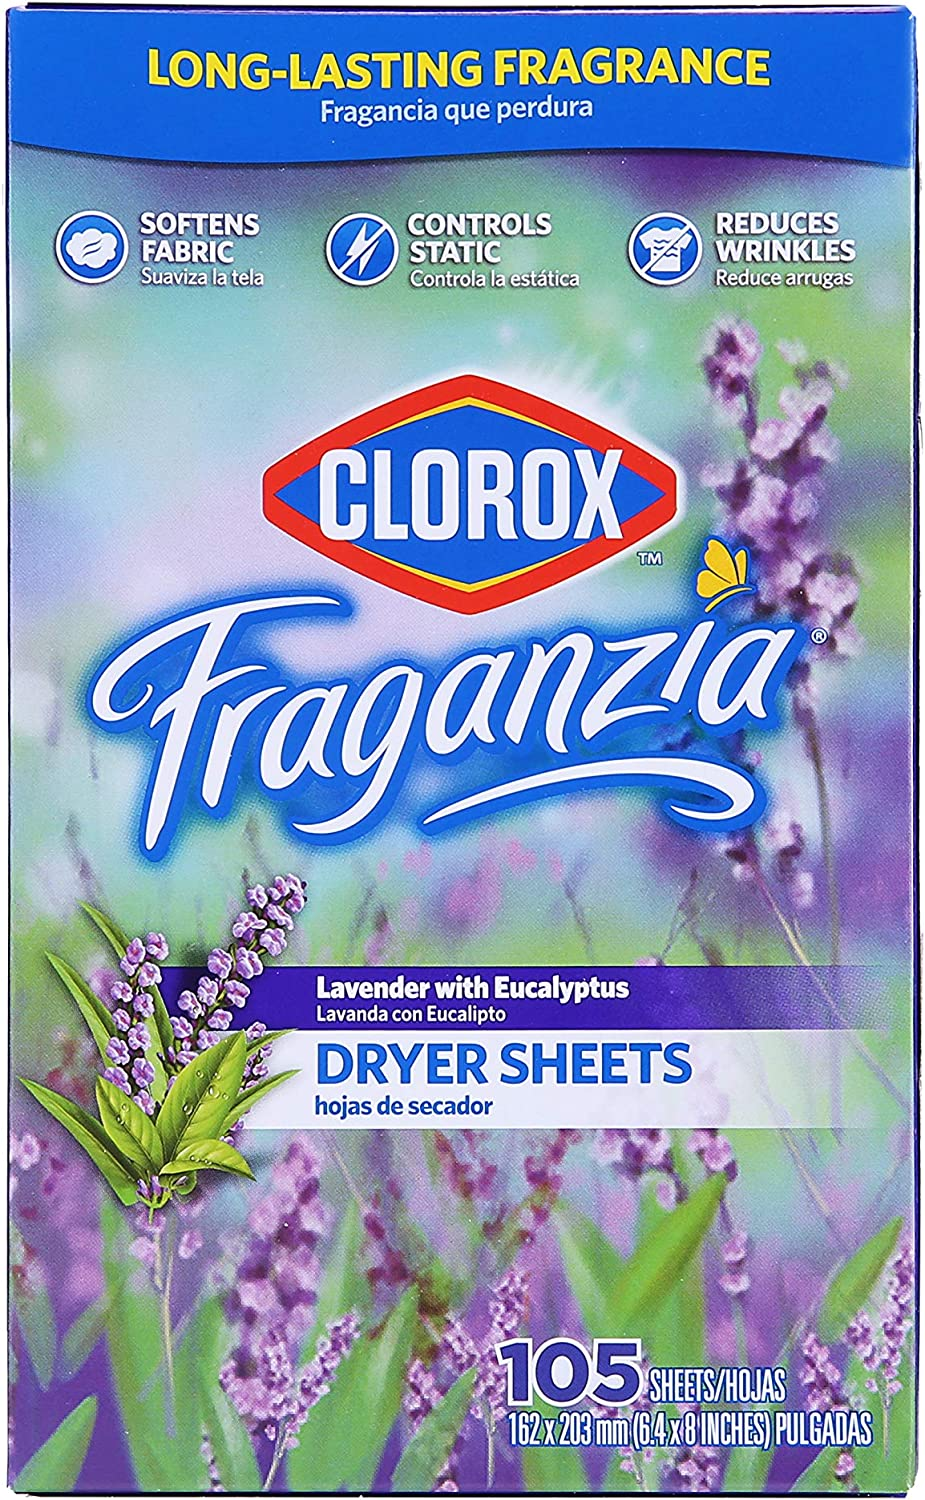 Clorox Fraganzia Fabric Softener Dryer Sheets | Scented Laundry Dryer Sheets for Great Smelling Clothes |Beautiful Lavender Scent Laundry Sheets, 105 Count